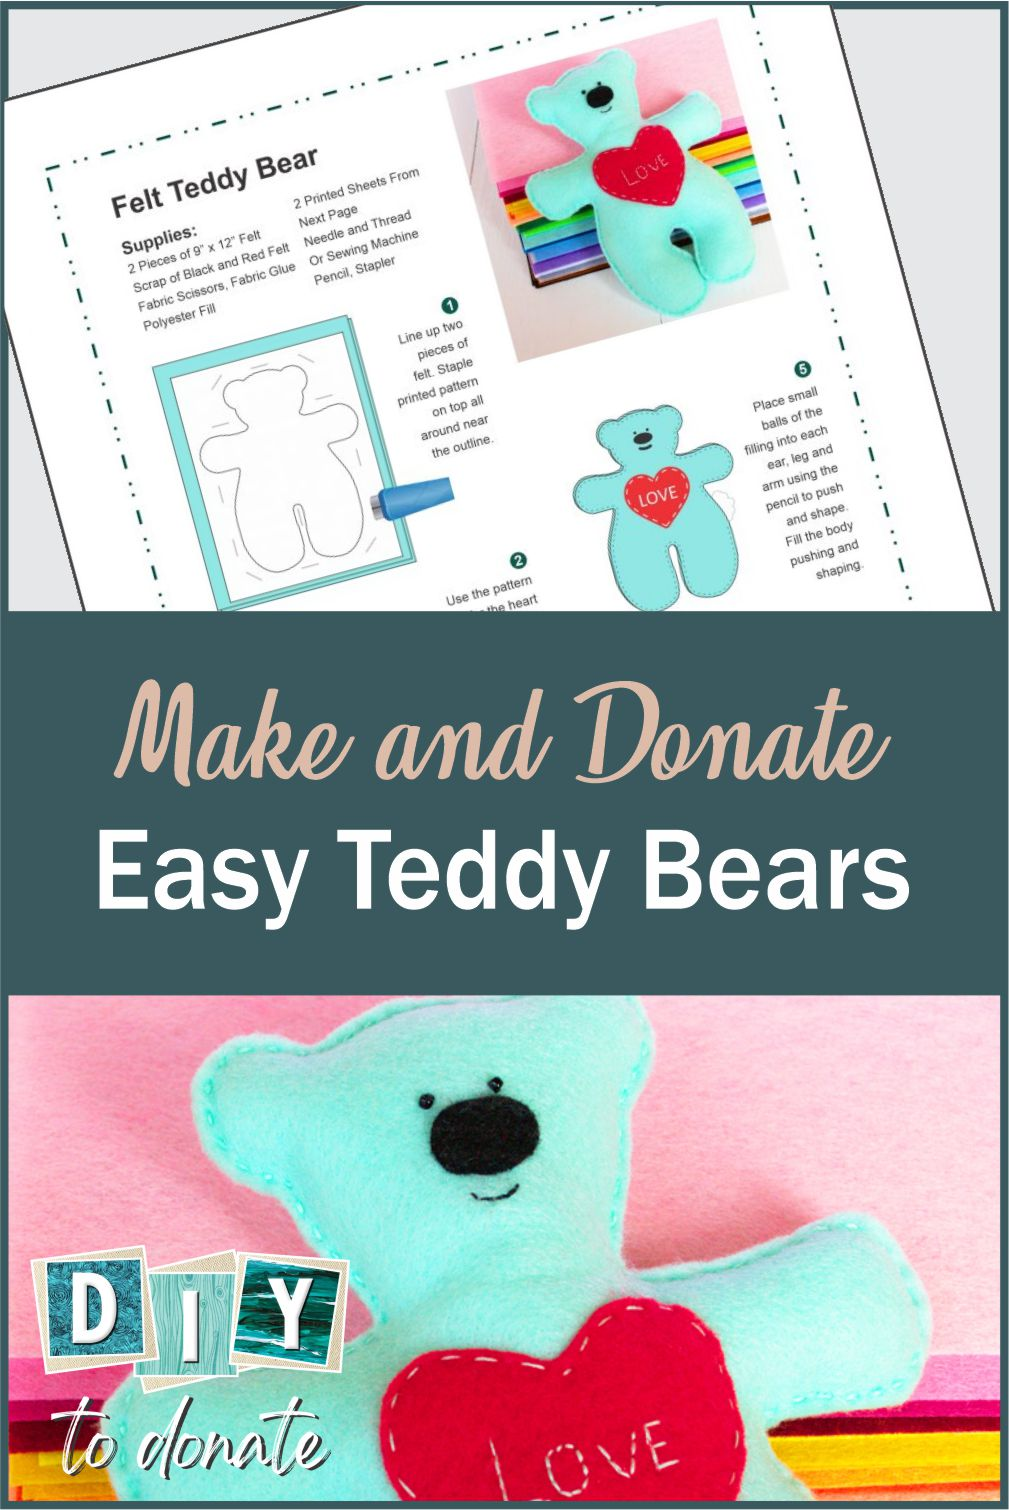 Free pattern for hand sewing or machine sewing felt teddy bears to donate. SVG file also included as well as donation information. #diytodonate #teddybears #kid #kids #feltbears #freepattern #printable #printablepattern #svg #dew #craft